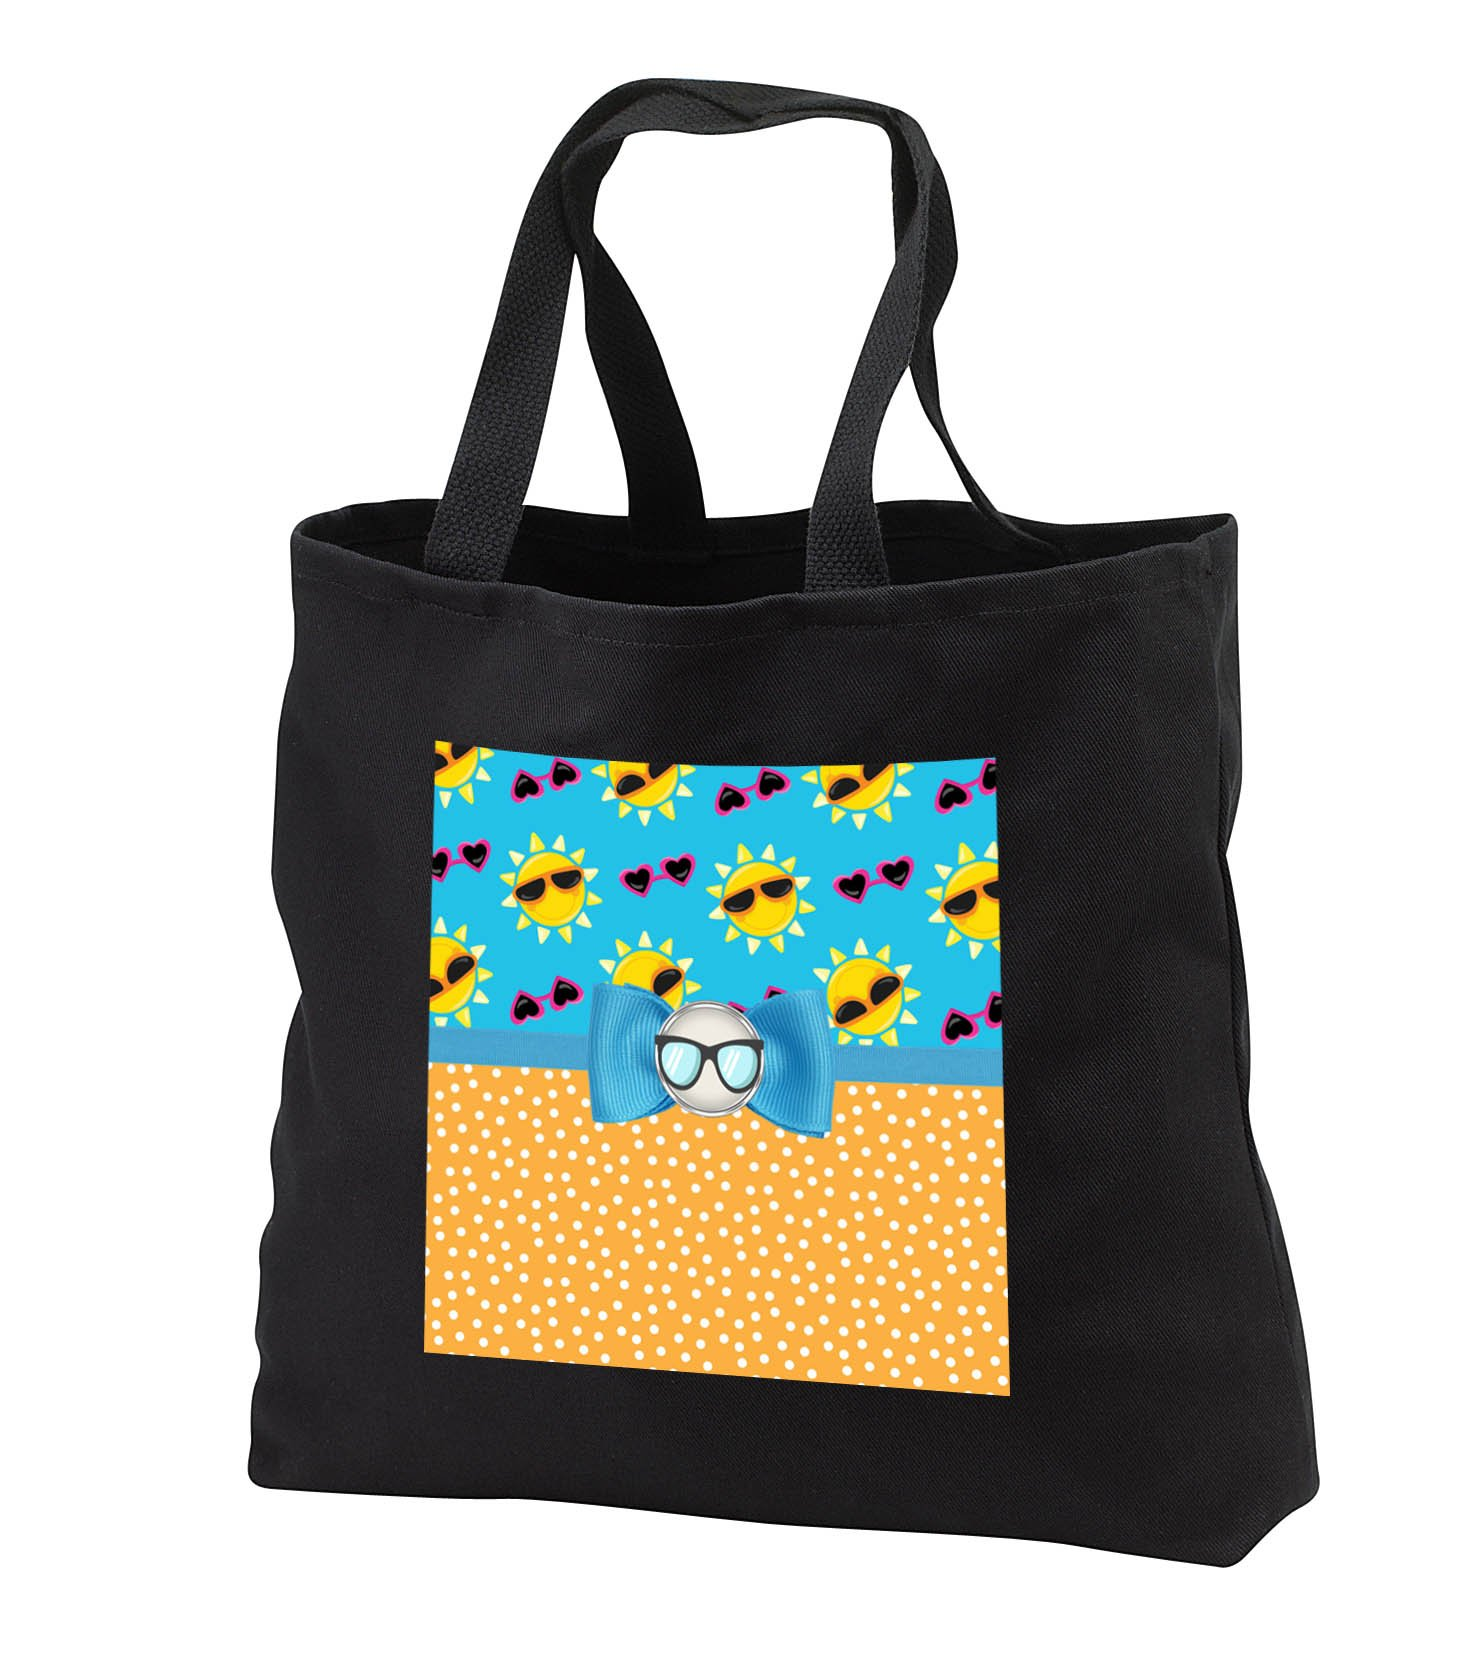 Anne Marie Baugh - Designs - Cute Suns and Sun Glasses Over Polka Dots With Digital Bow - Tote Bags - Black Tote Bag JUMBO 20w x 15h x 5d (tb_282882_3)